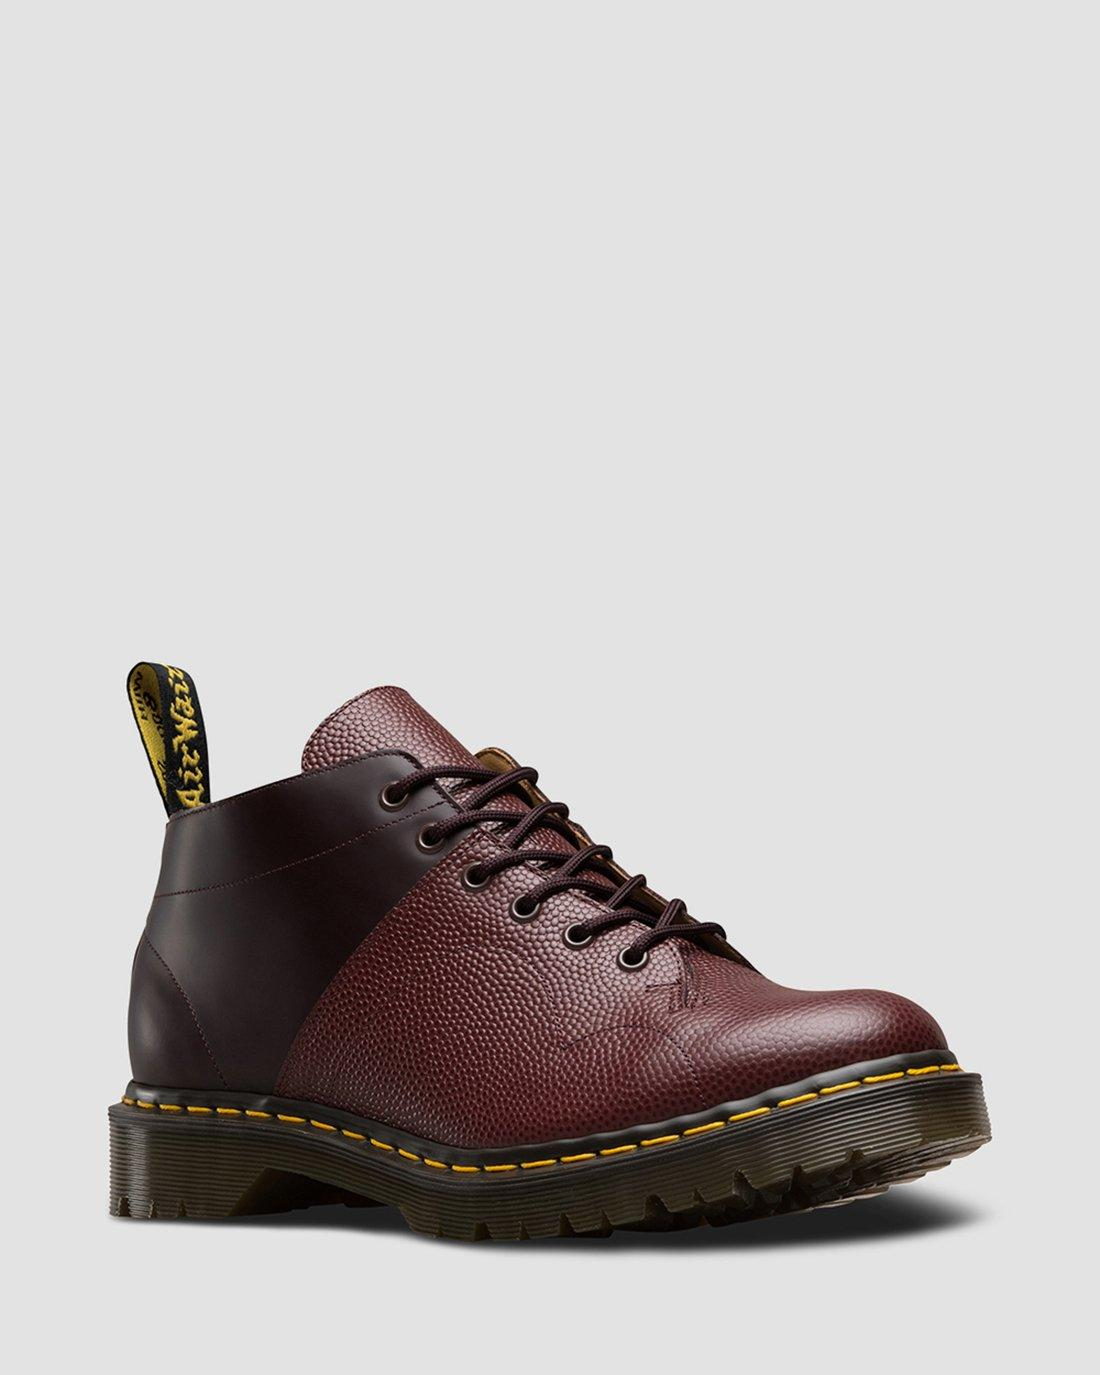 Dr. Martens Made In England x Engineered Garments Church